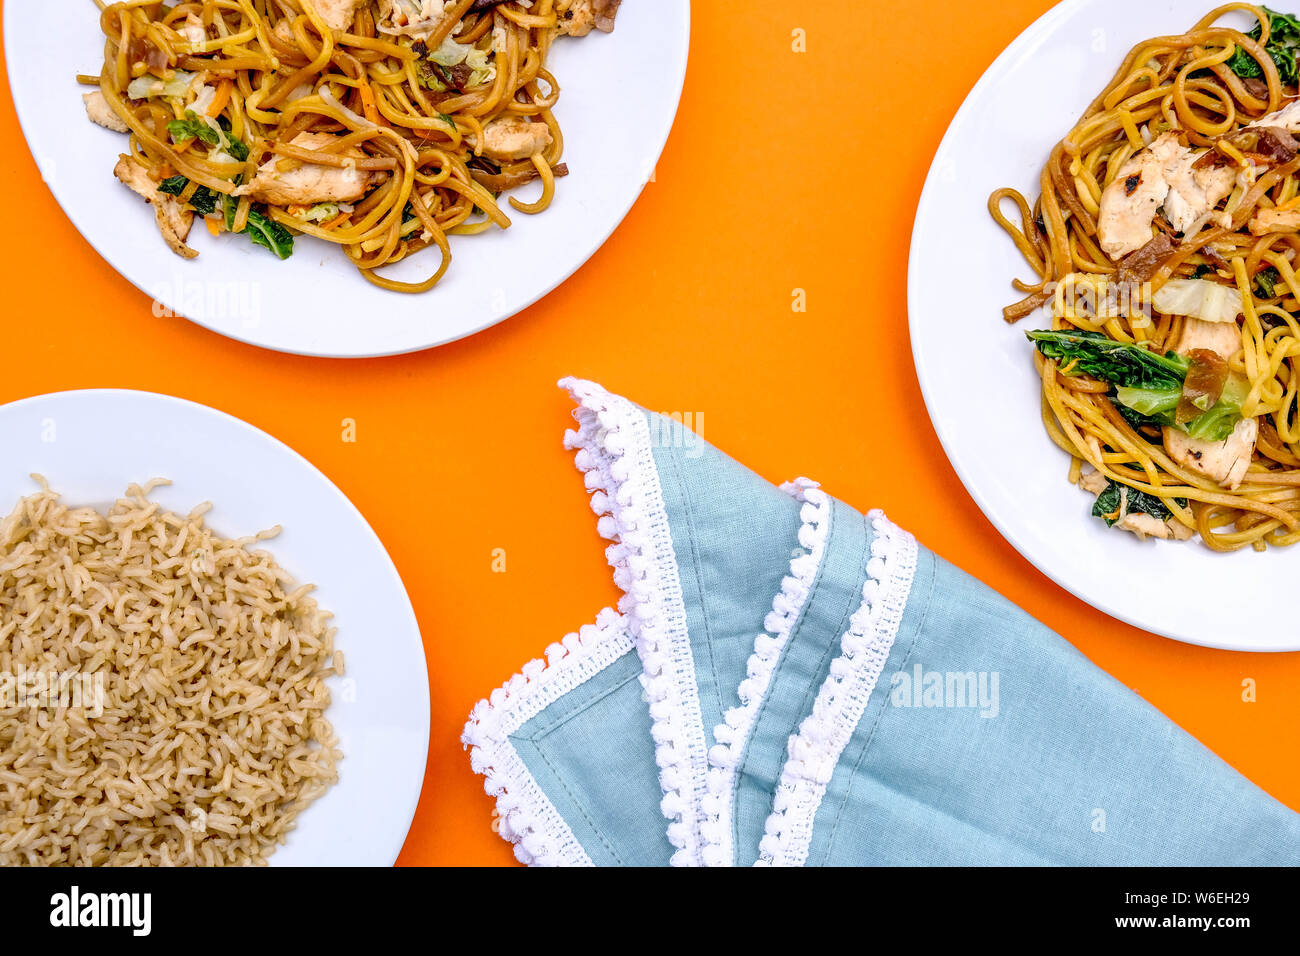 Chinese Style Chicken Chow Mein Meal With Egg Noodles and Wholegrain Rice Stock Photo